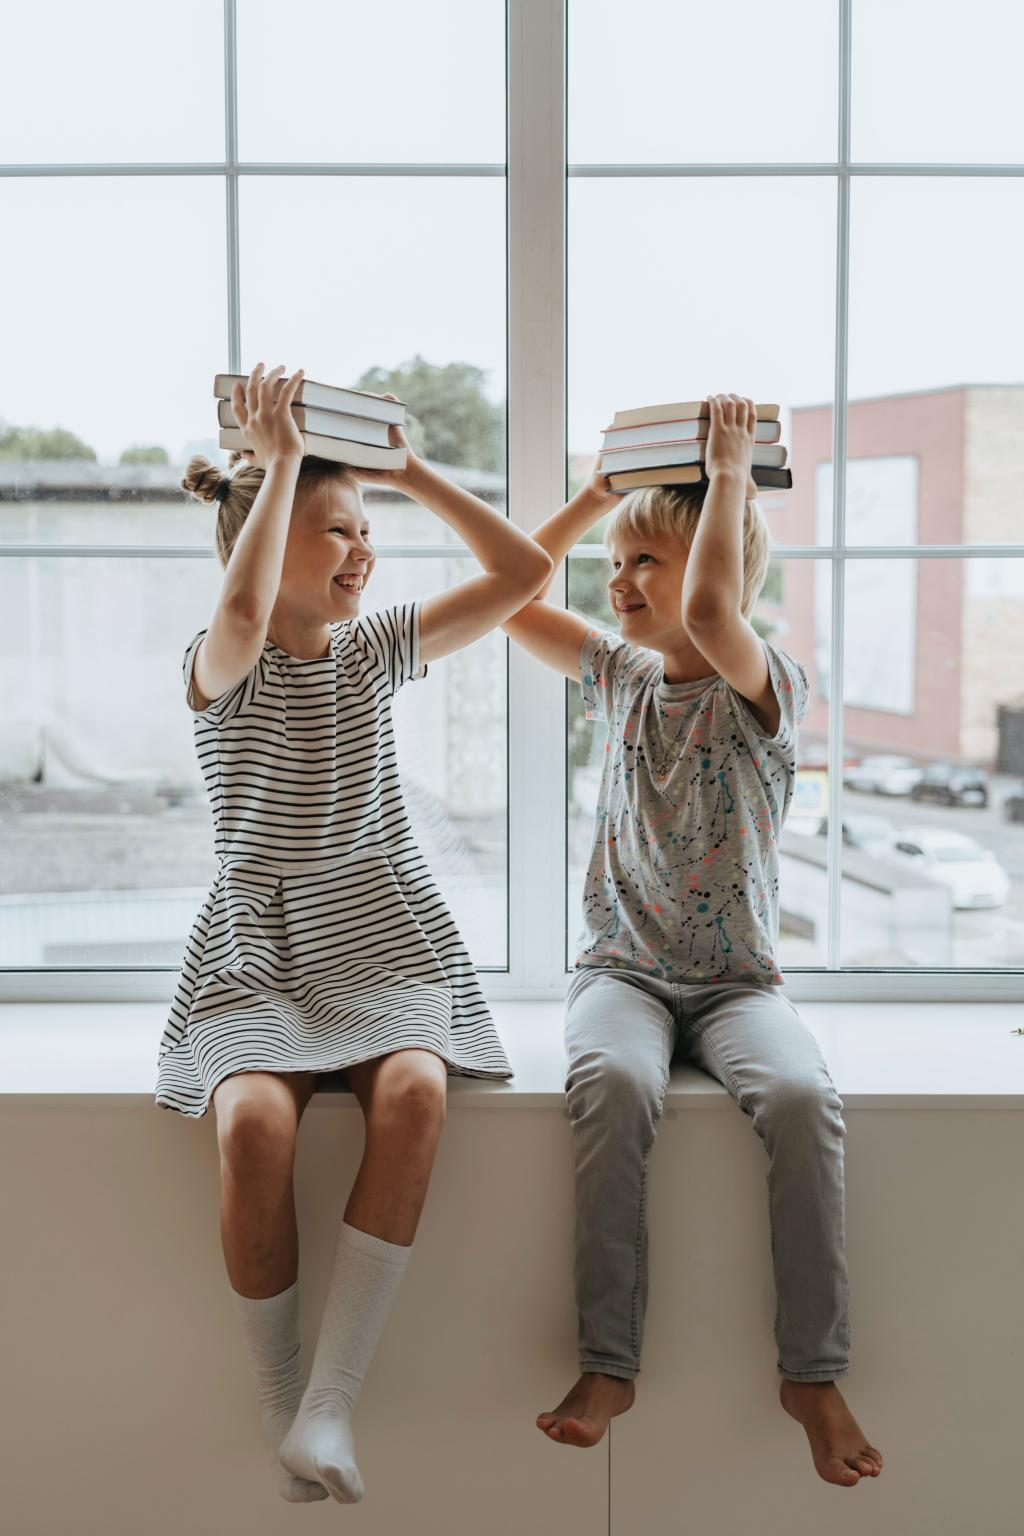 Children sitting on windowsill balancing books on head